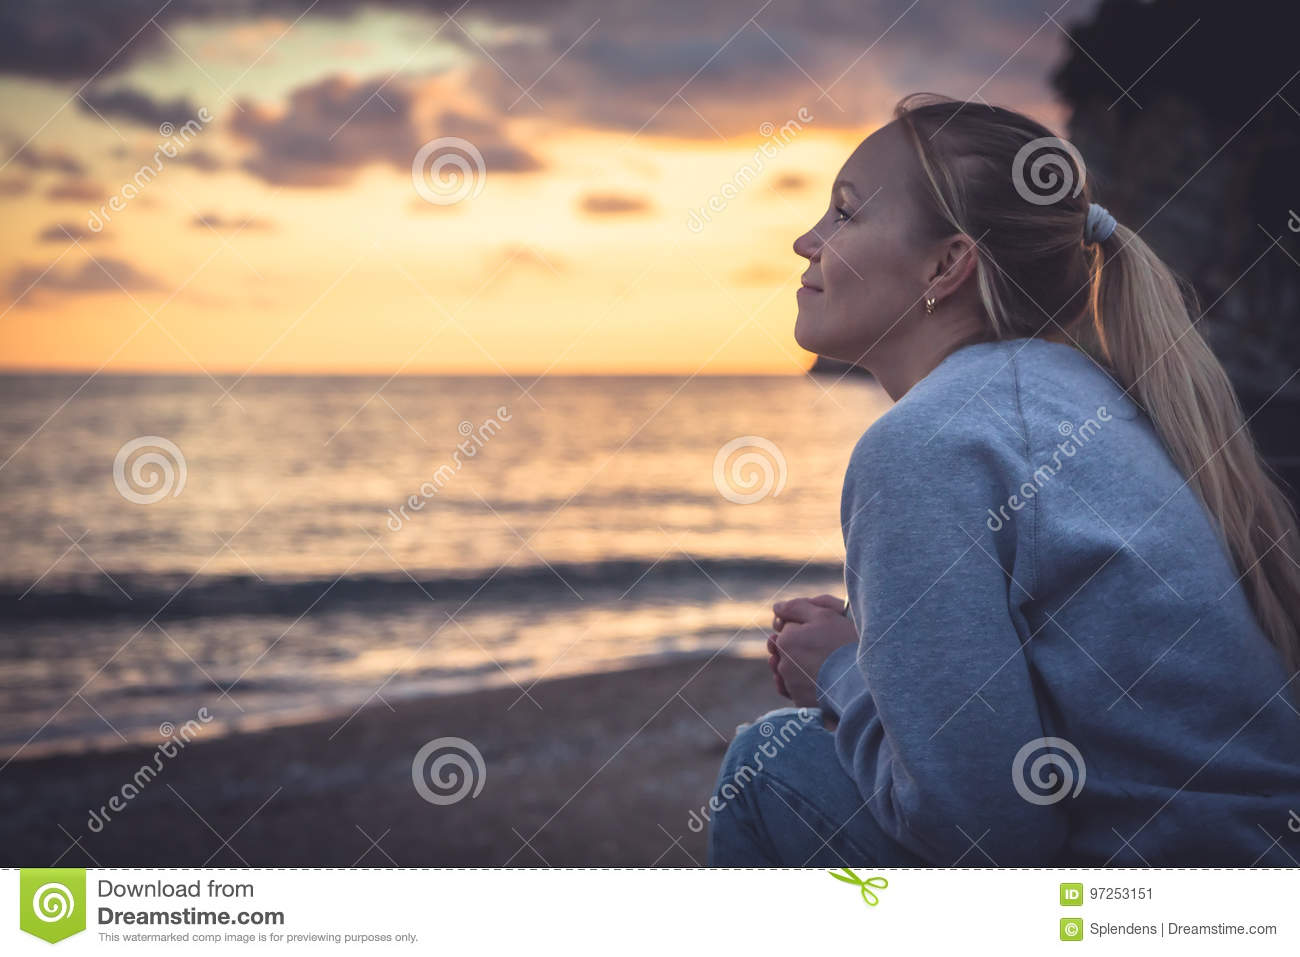 Pensive lonely smiling woman looking with hope into horizon during sunset at beach